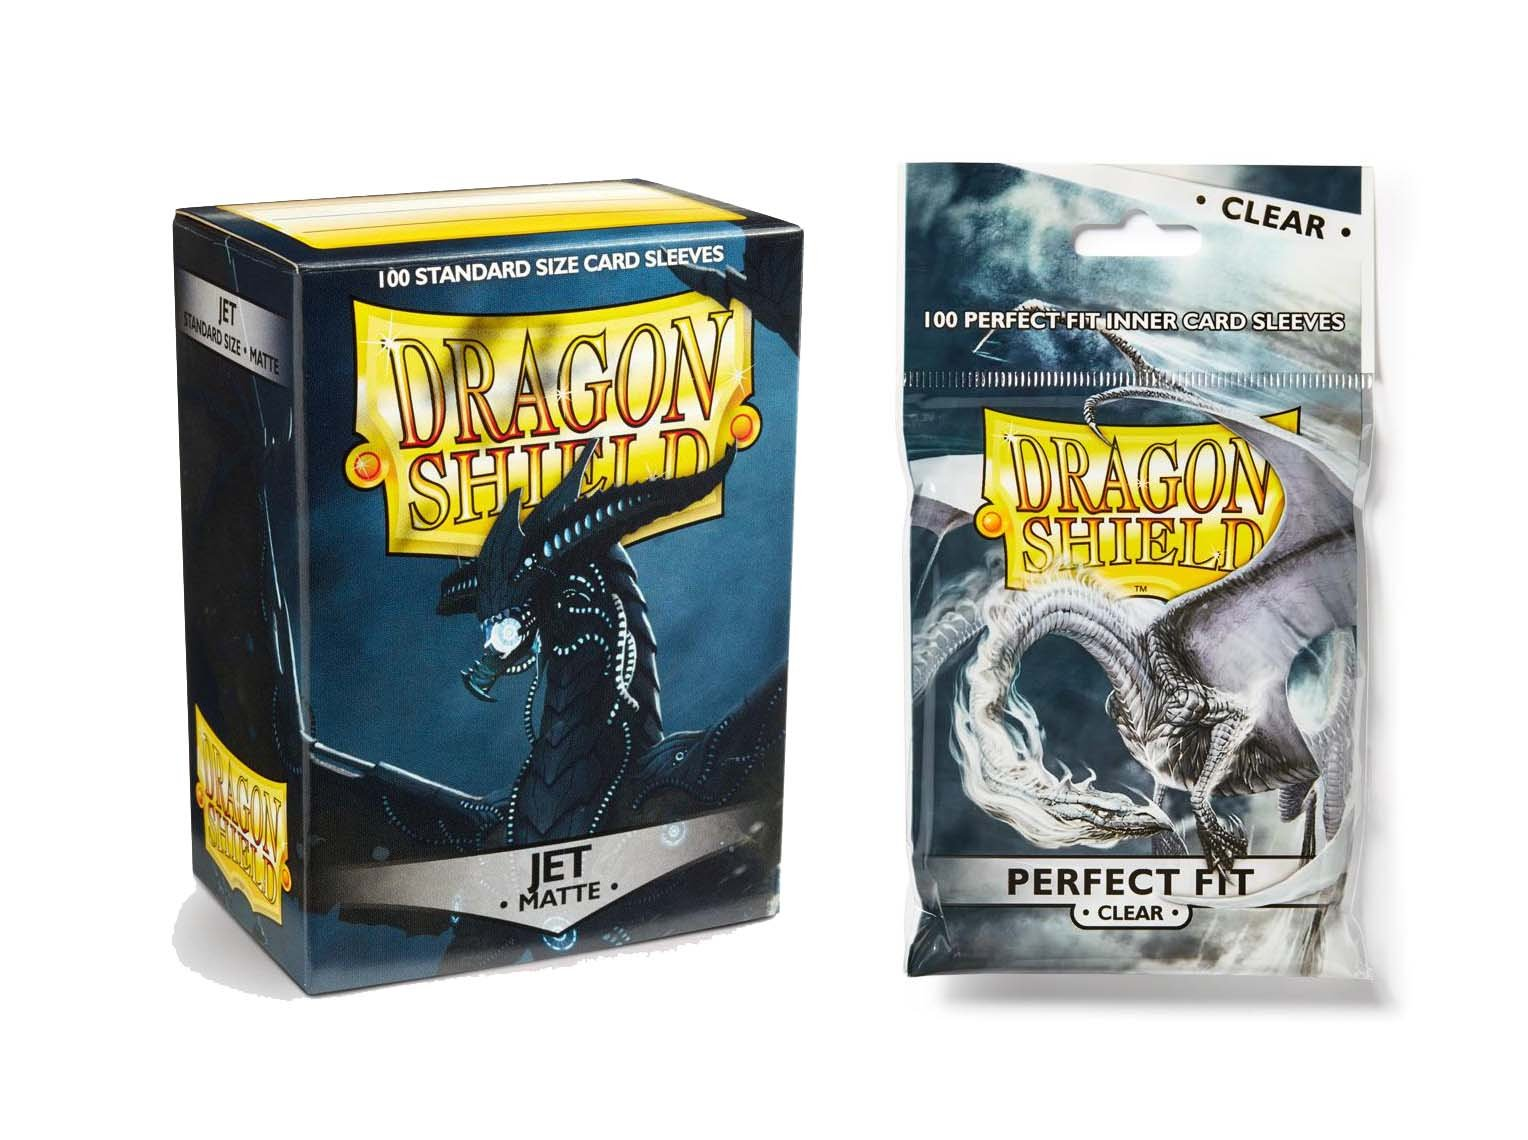 Dragon Shield Bundle: Matte Jet 100 Count Standard Size Deck Protector Sleeves + 100 Count Clear Perfect Fit Inner Card Sleeves